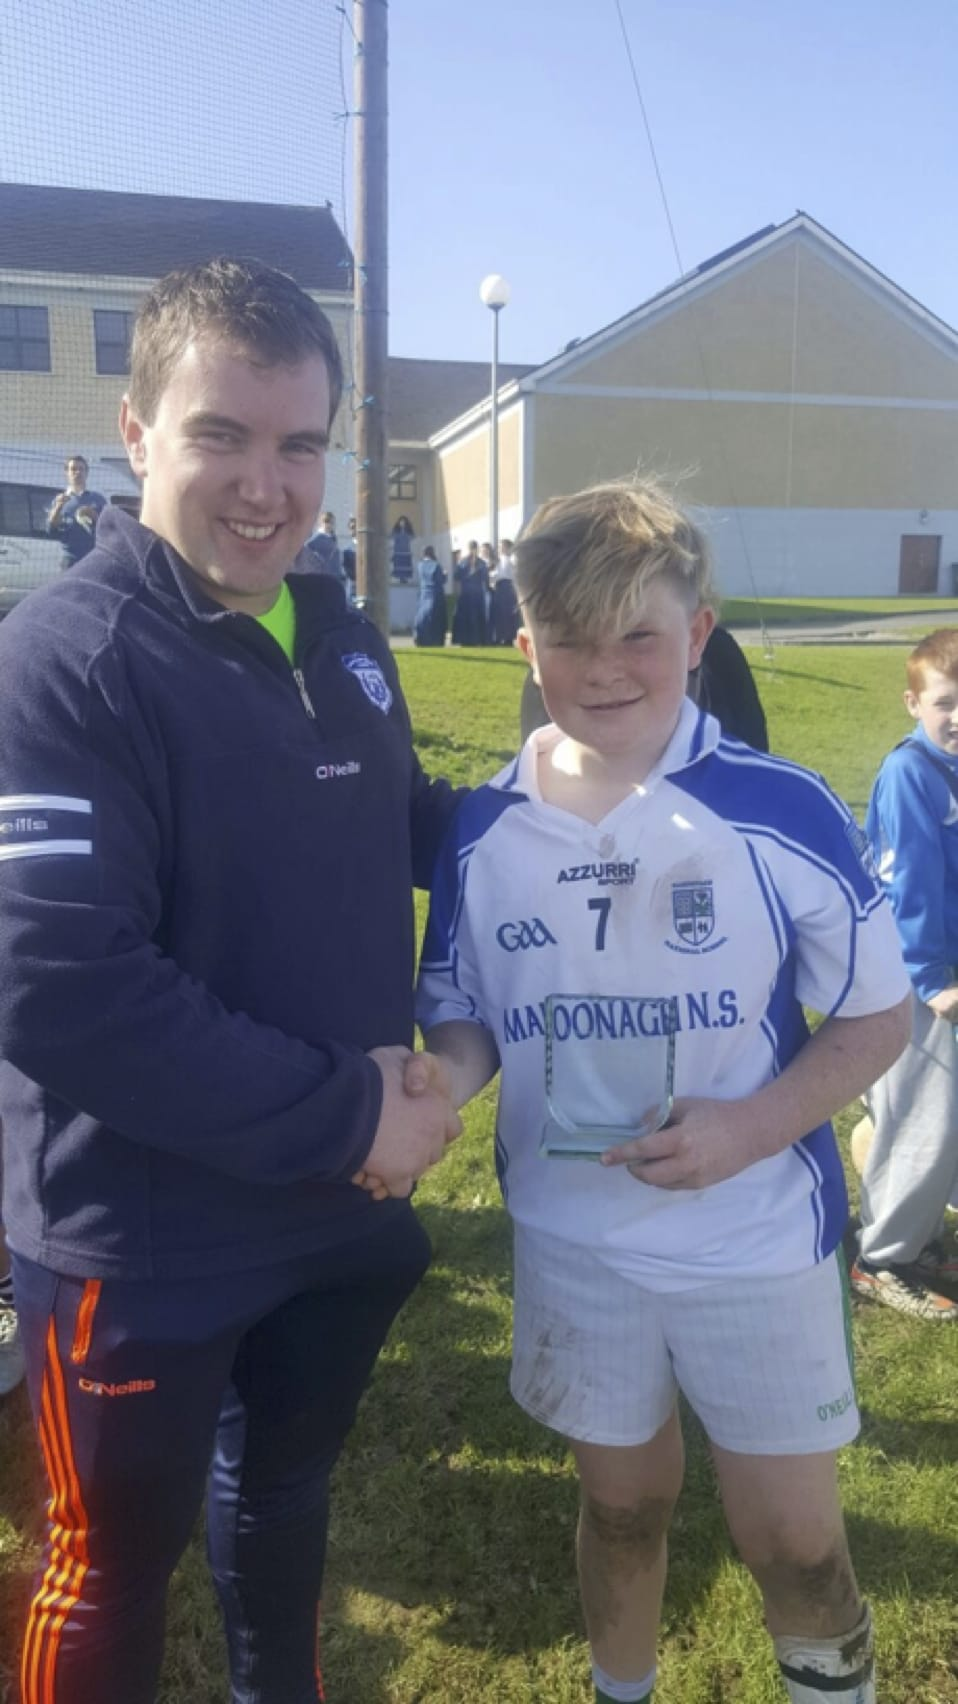 26-27 Sept 2016: Mr Kelly presents player of the tournament to JJ Condon from Mahoonagh N.S.